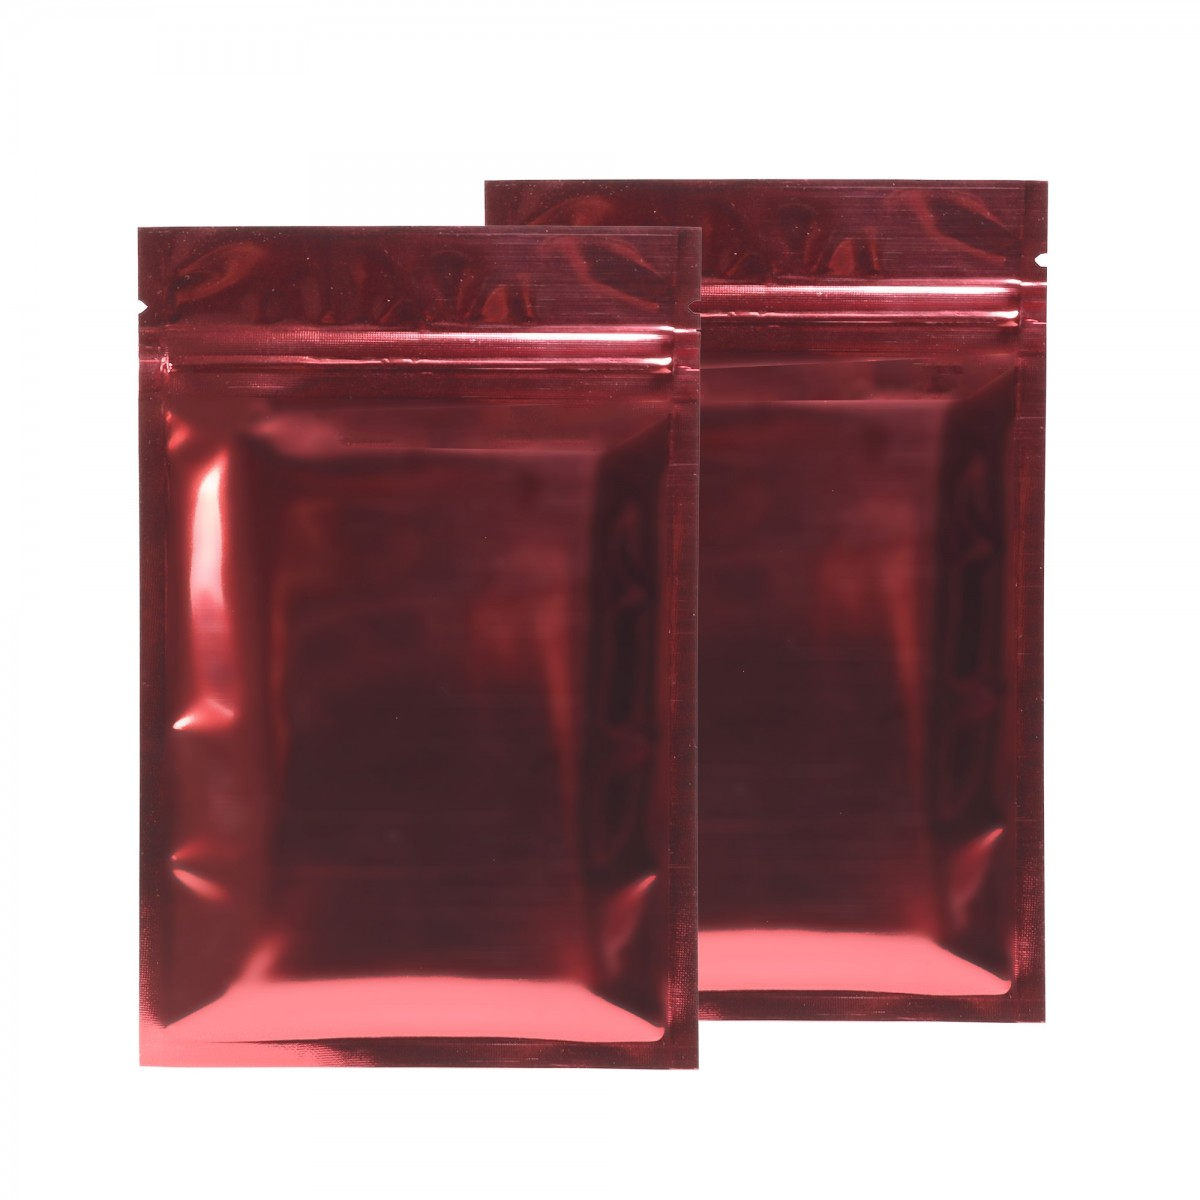 red shiny metallic mylar ziplock bags 8 5 cm x 13 cm 3 3 inches x 5 1 inches 500 bags lot. Black Bedroom Furniture Sets. Home Design Ideas